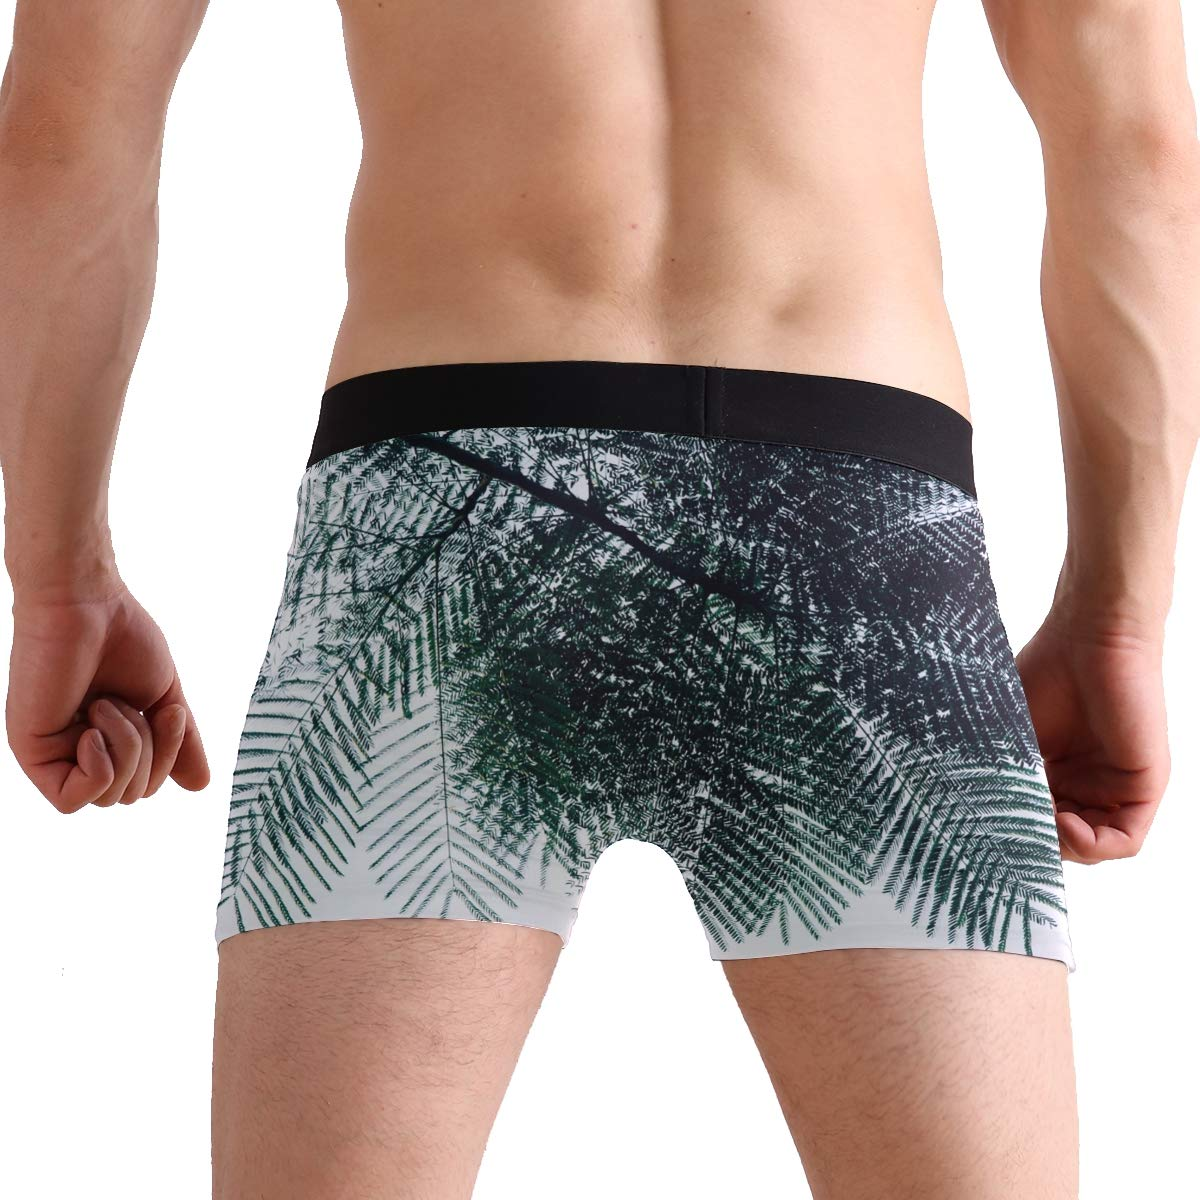 Hipster Unique Green Leafed Tree During Boxer Briefs Mens Underwear Boys Breathable Stretch Low Rise